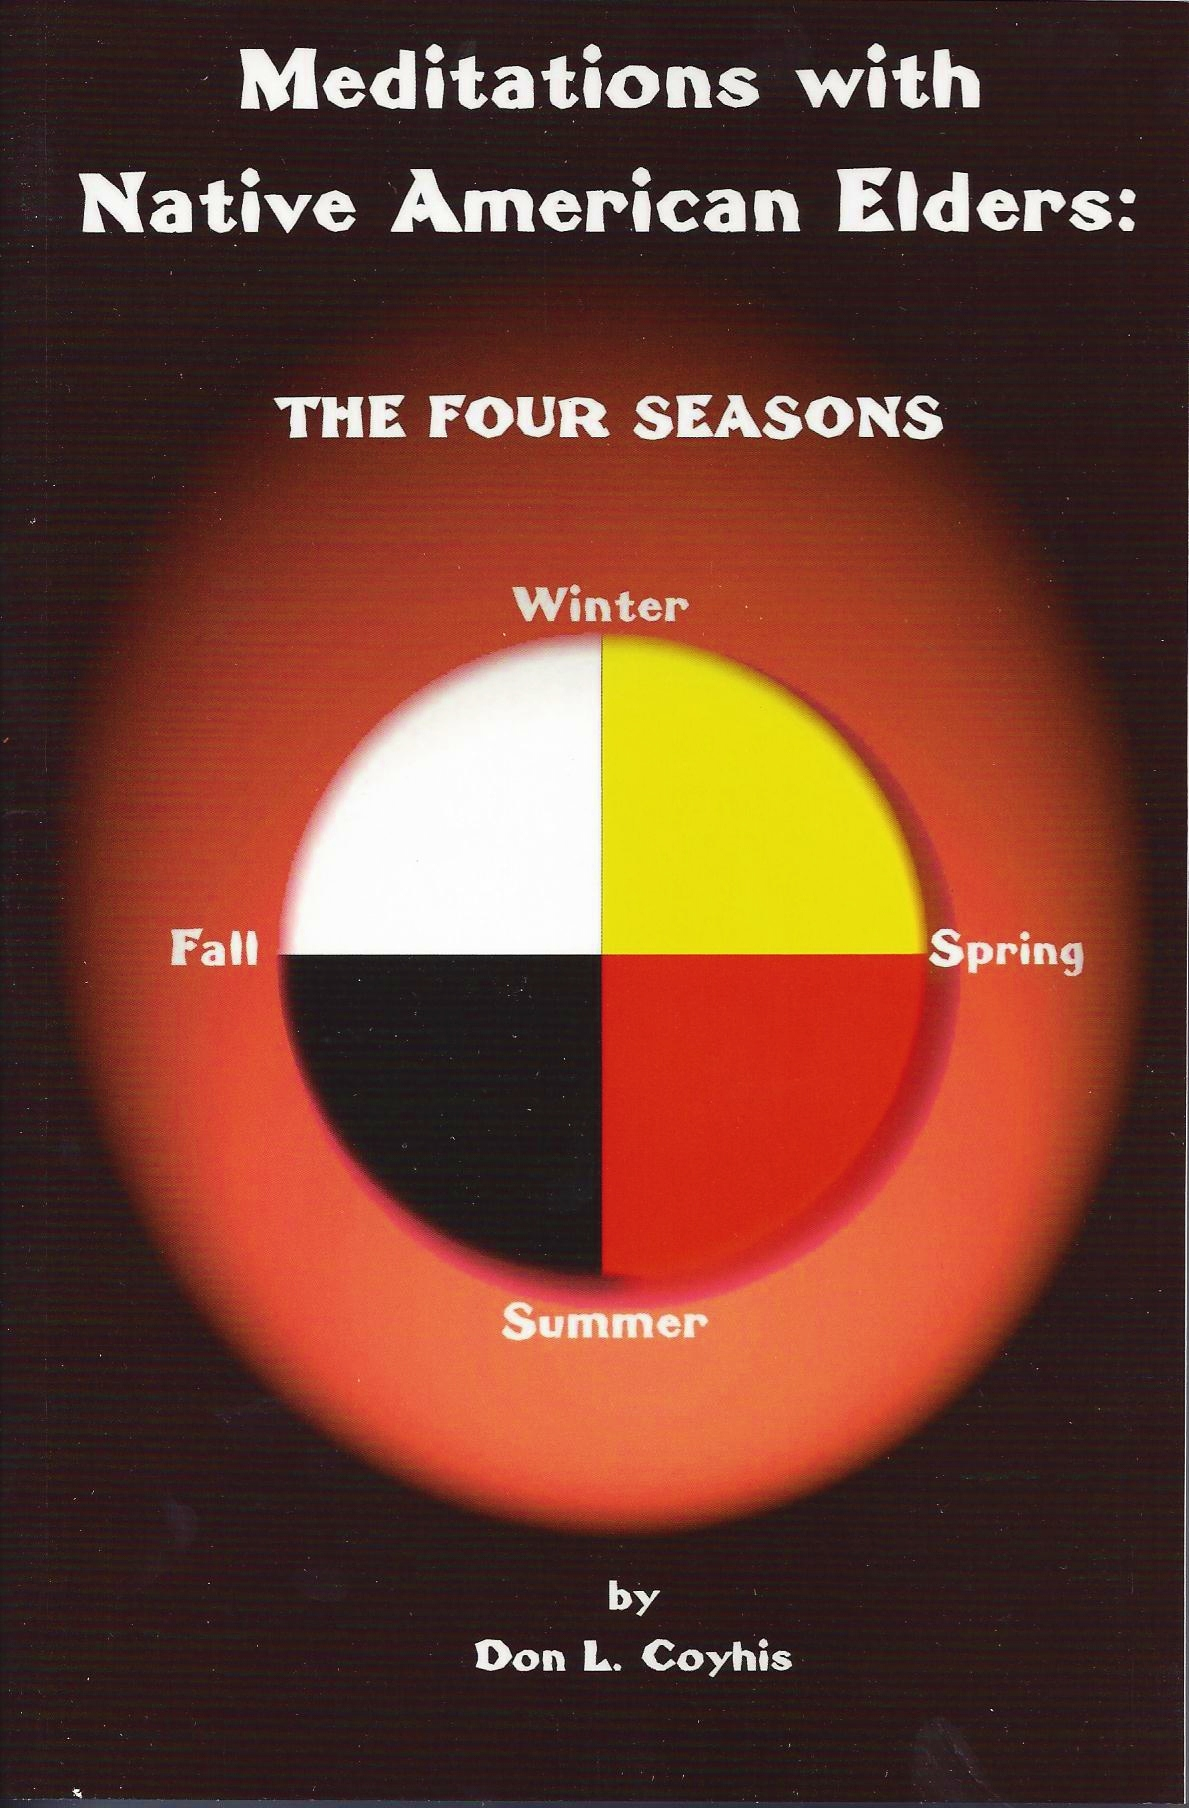 Meditations with Native American Elders: The Four Seasons